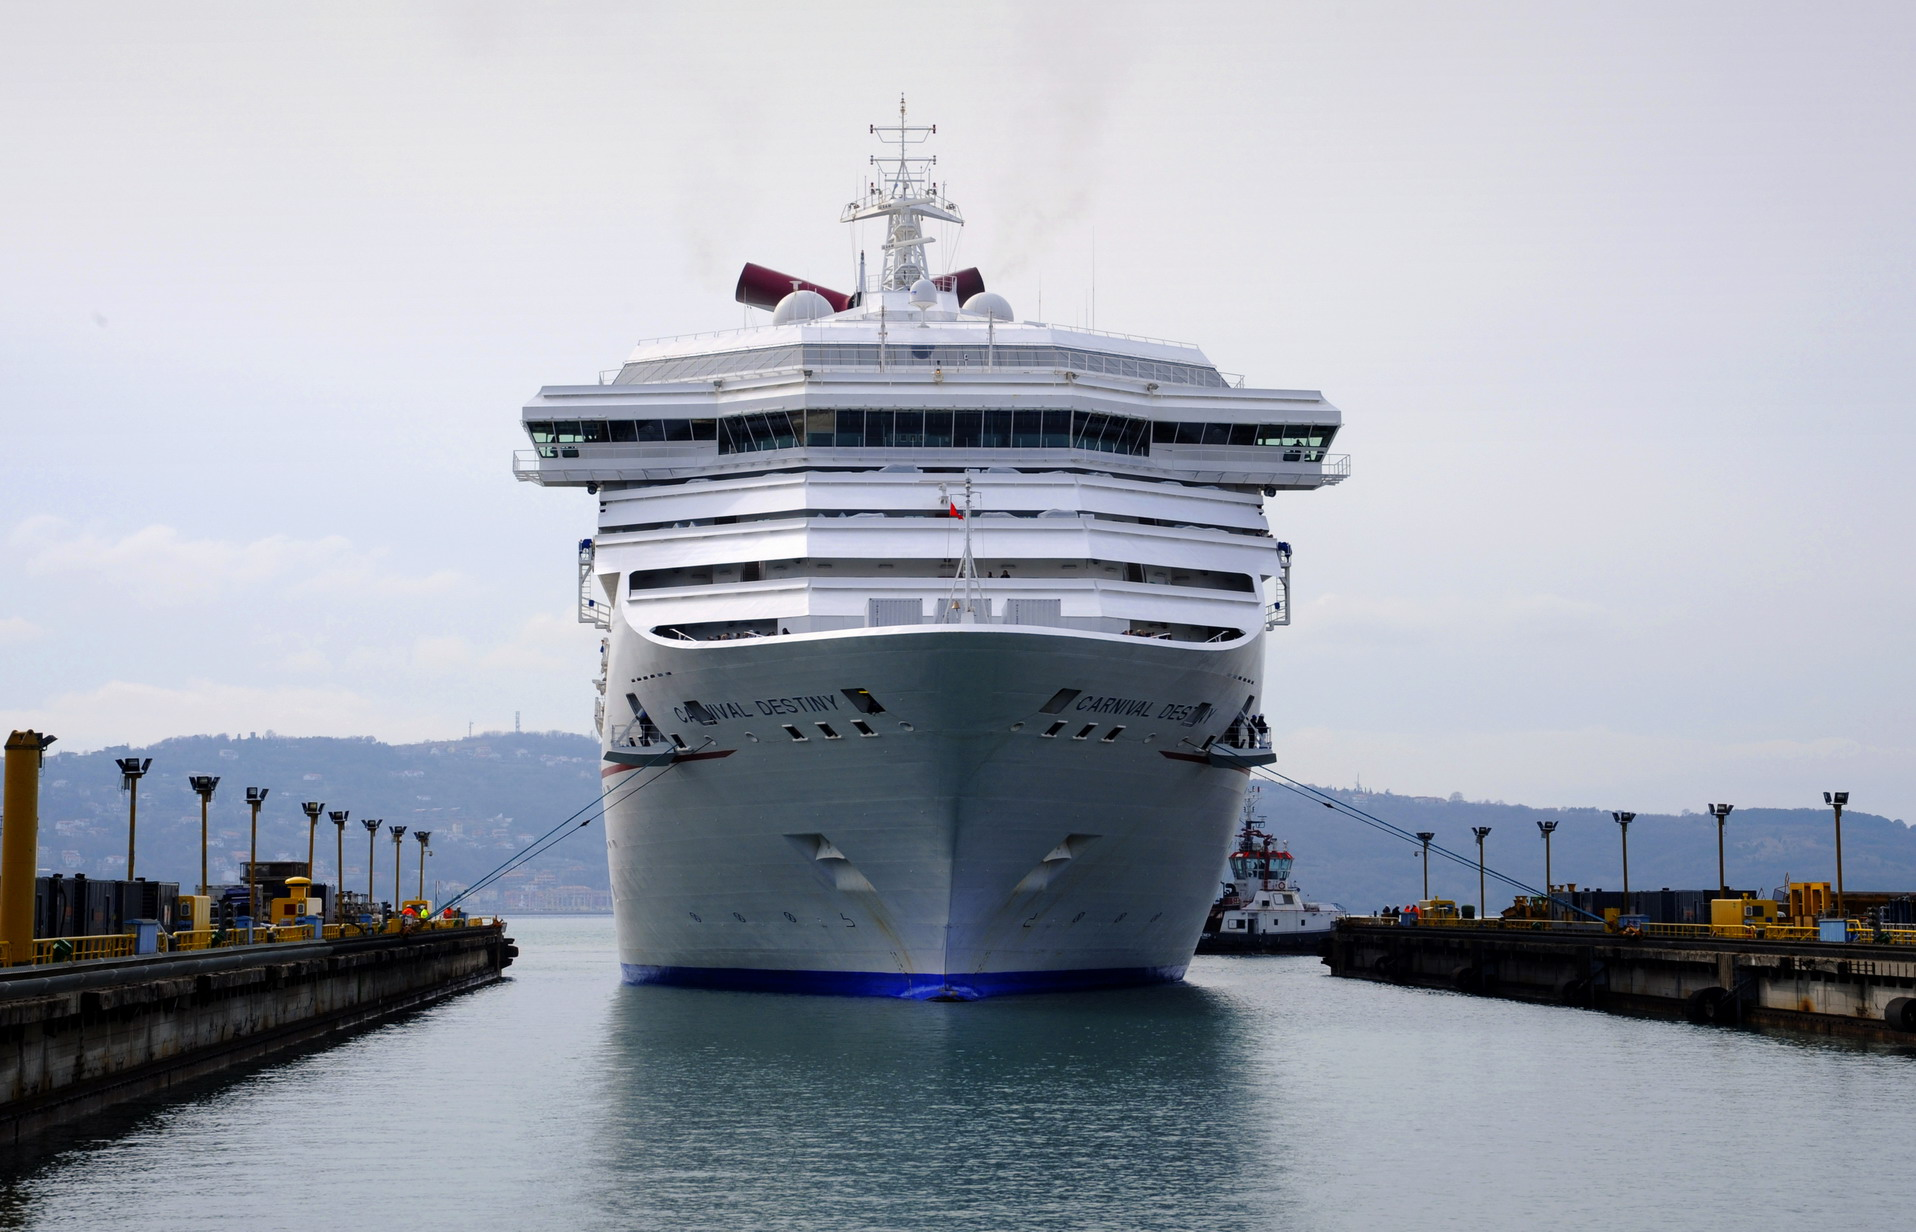 And So It Begins!  New Video, Photos Offer Behind-the-Scenes Look at Carnival Sunshine Refit Taking Place at Fincantieri Shipyard